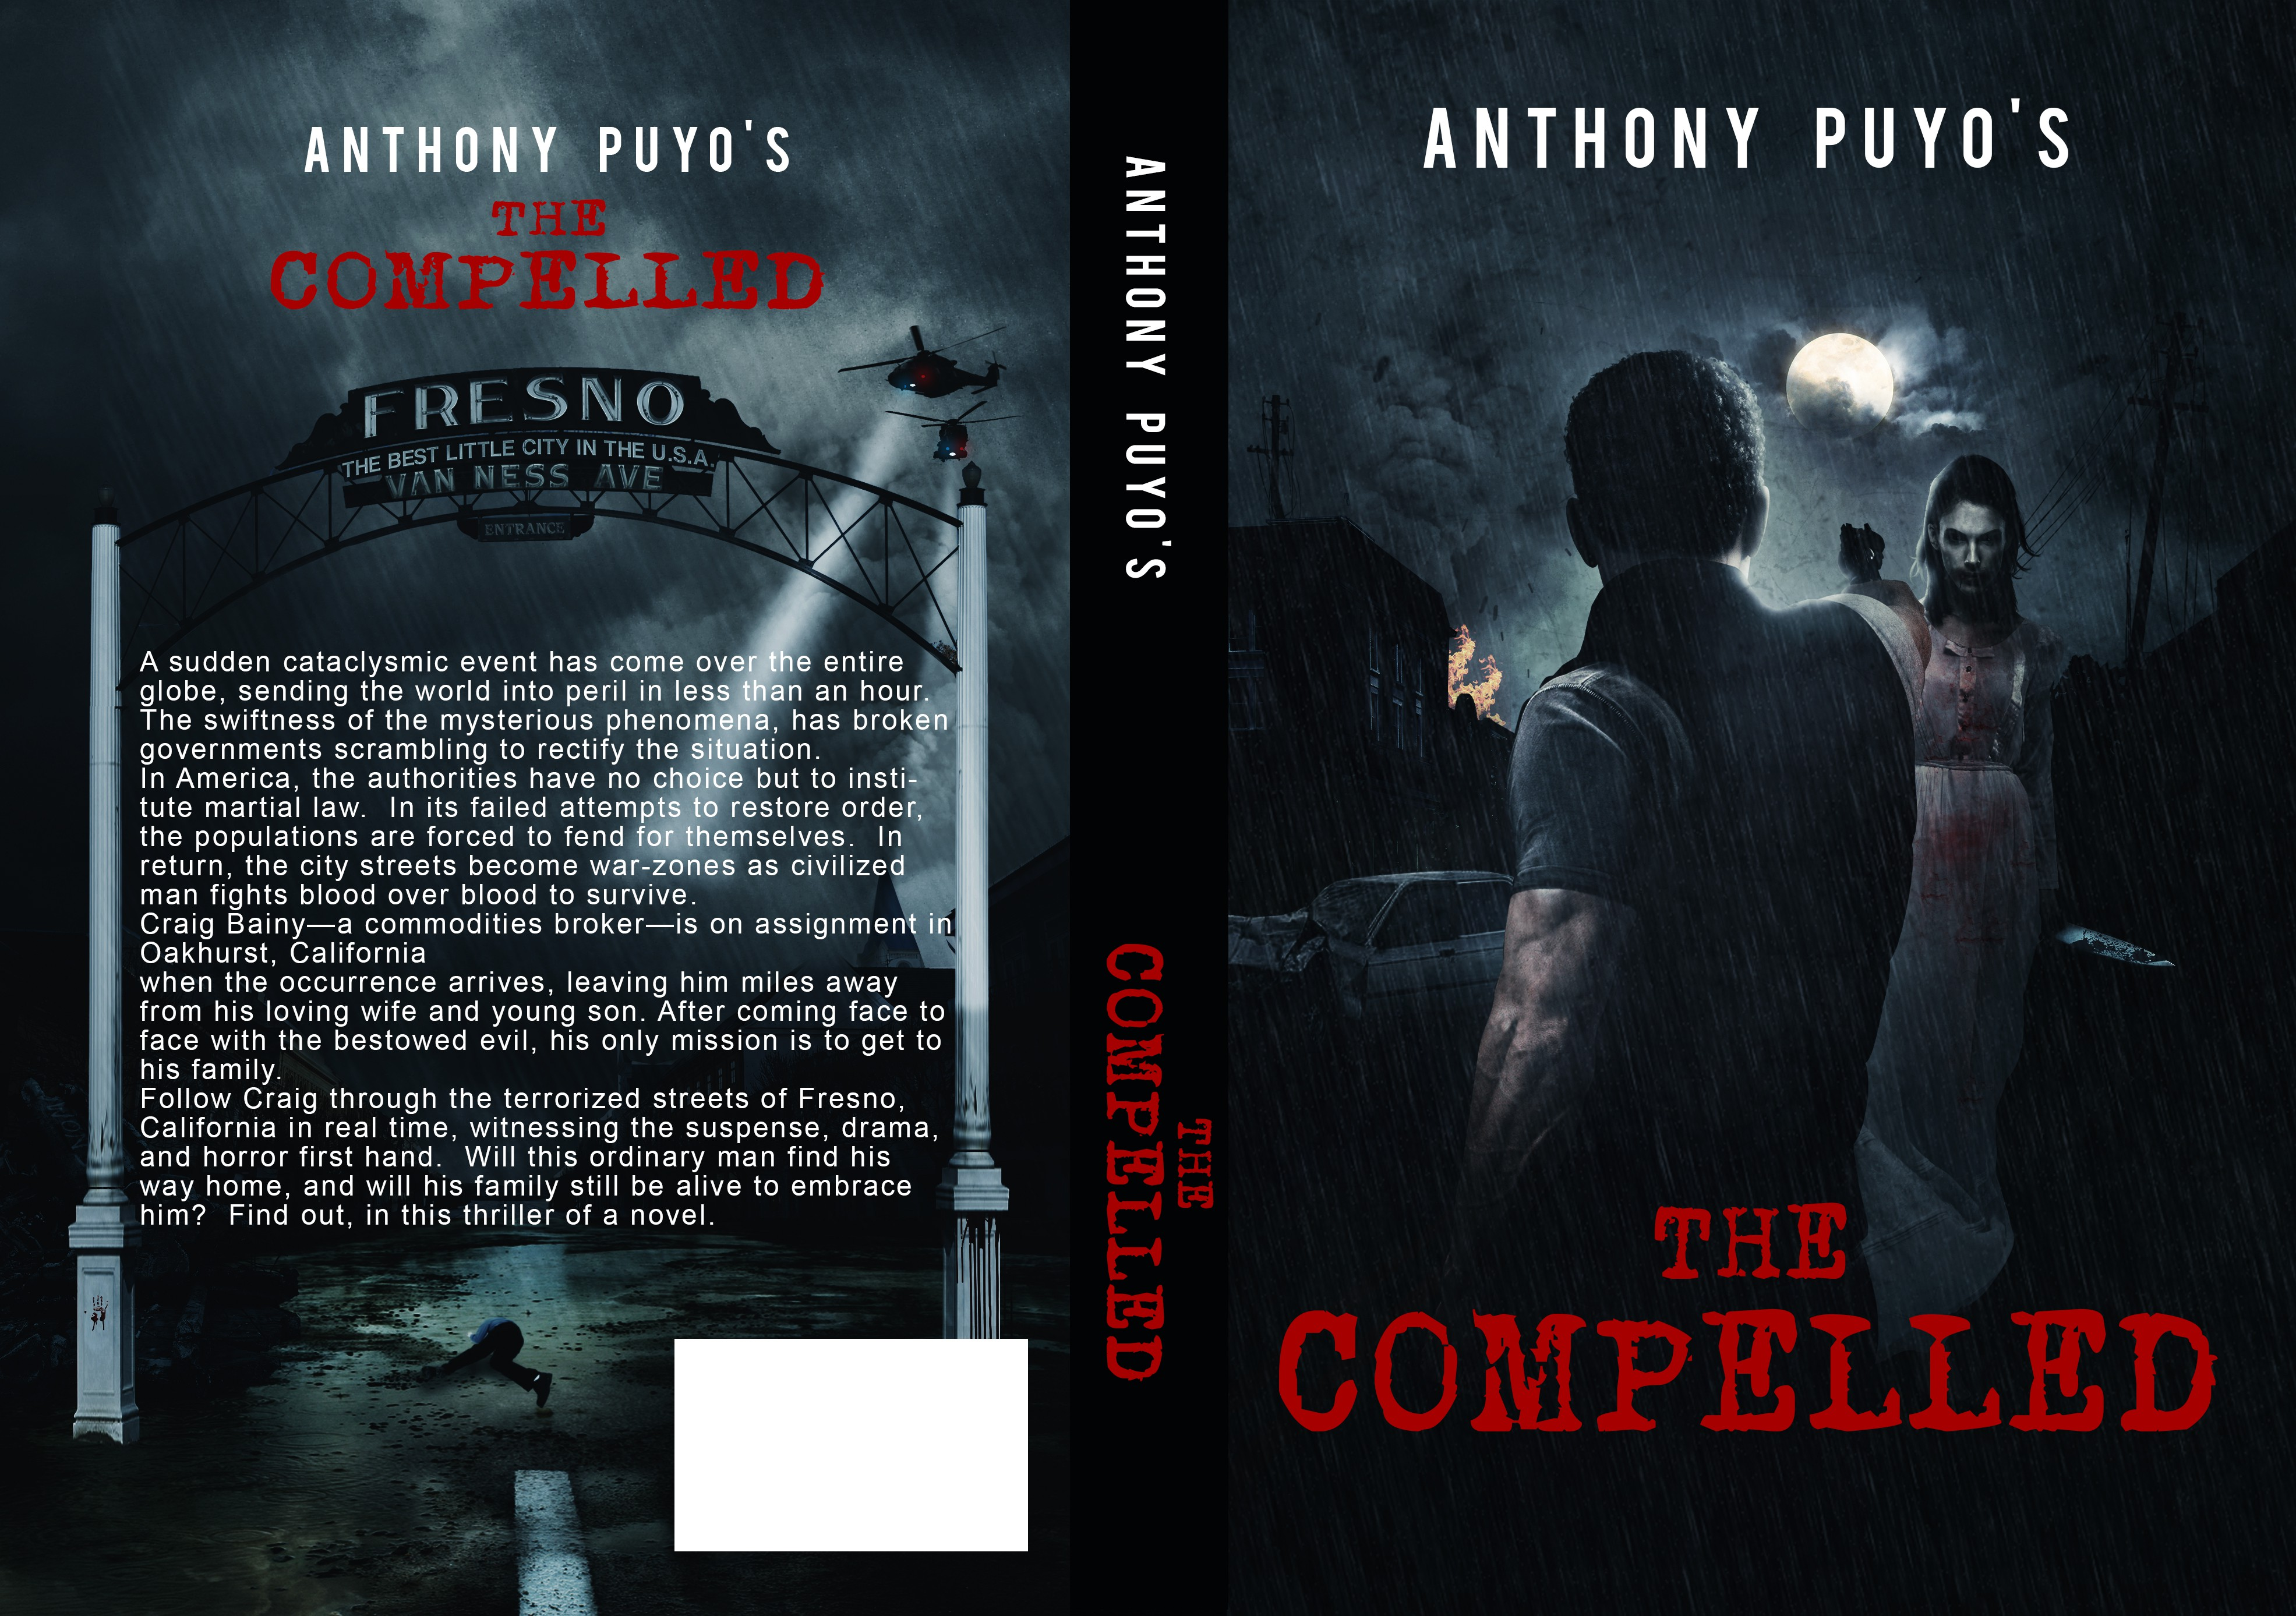 Horror artistry wanted for book cover.